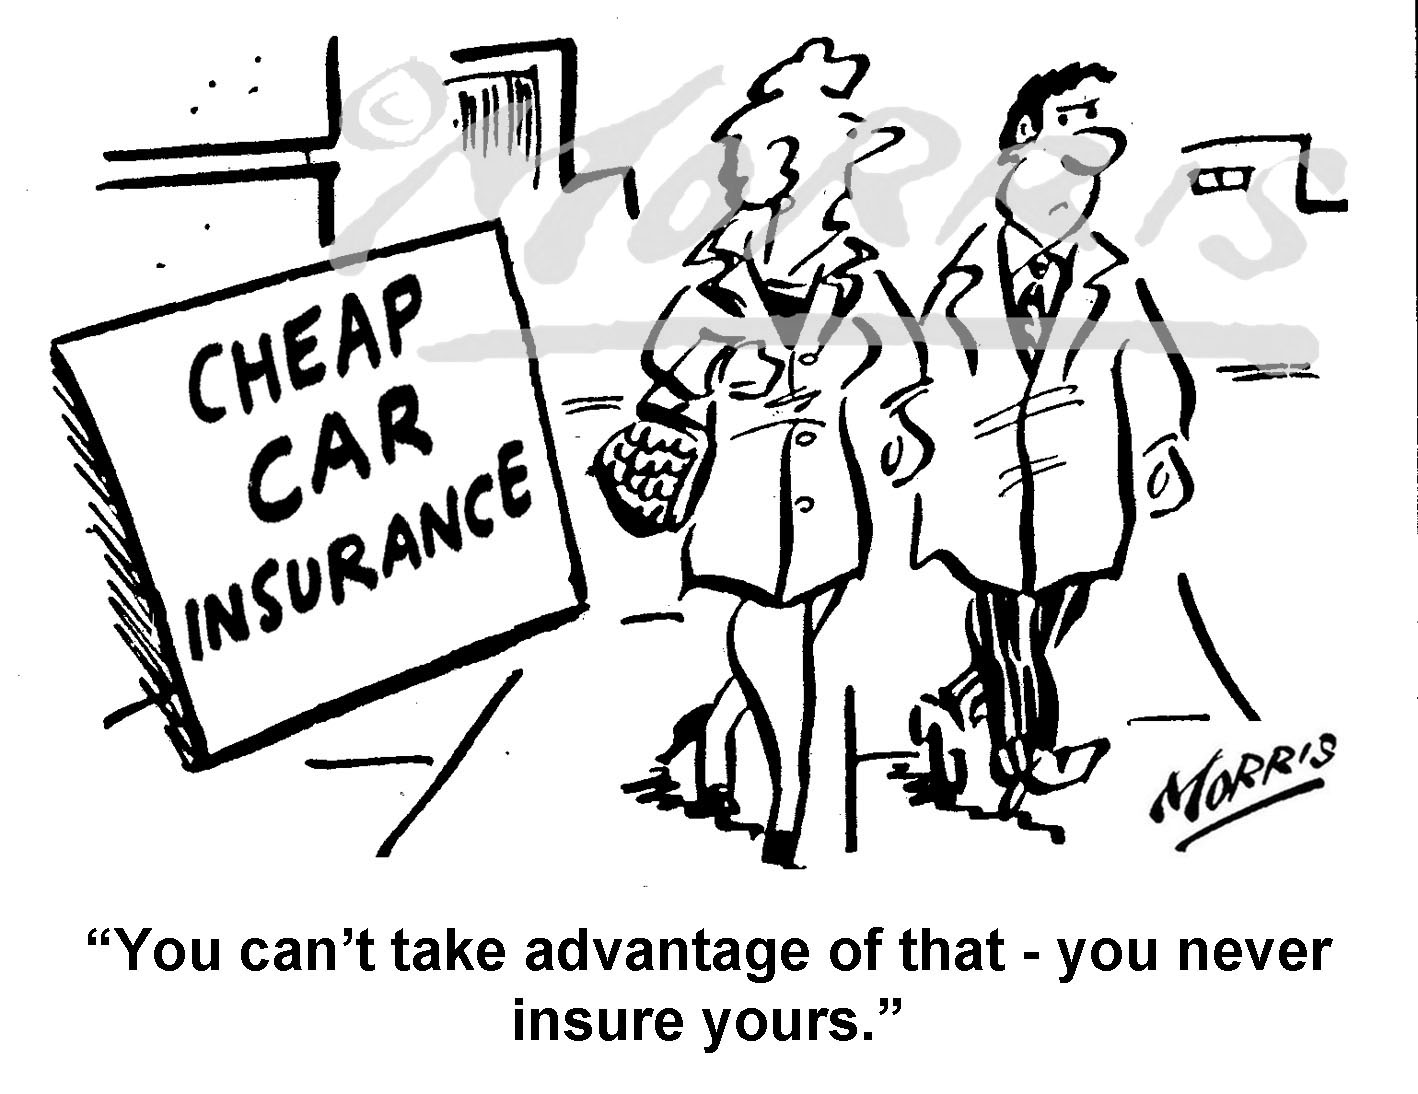 Car motor vehicle insurance cartoon Ref: 8609bw